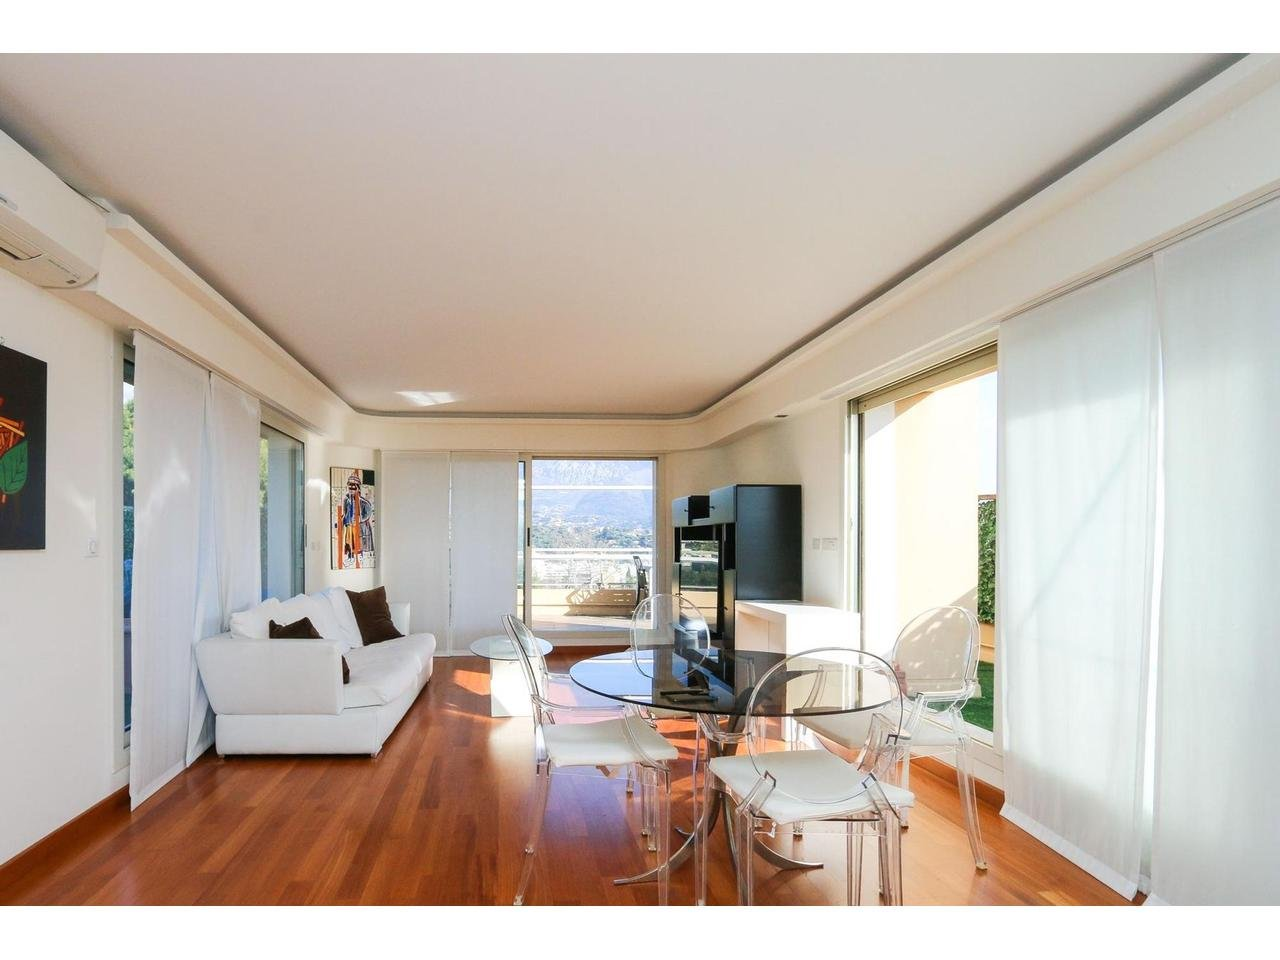 Appartement  4 Rooms 92.28m2  for sale   990 000 €